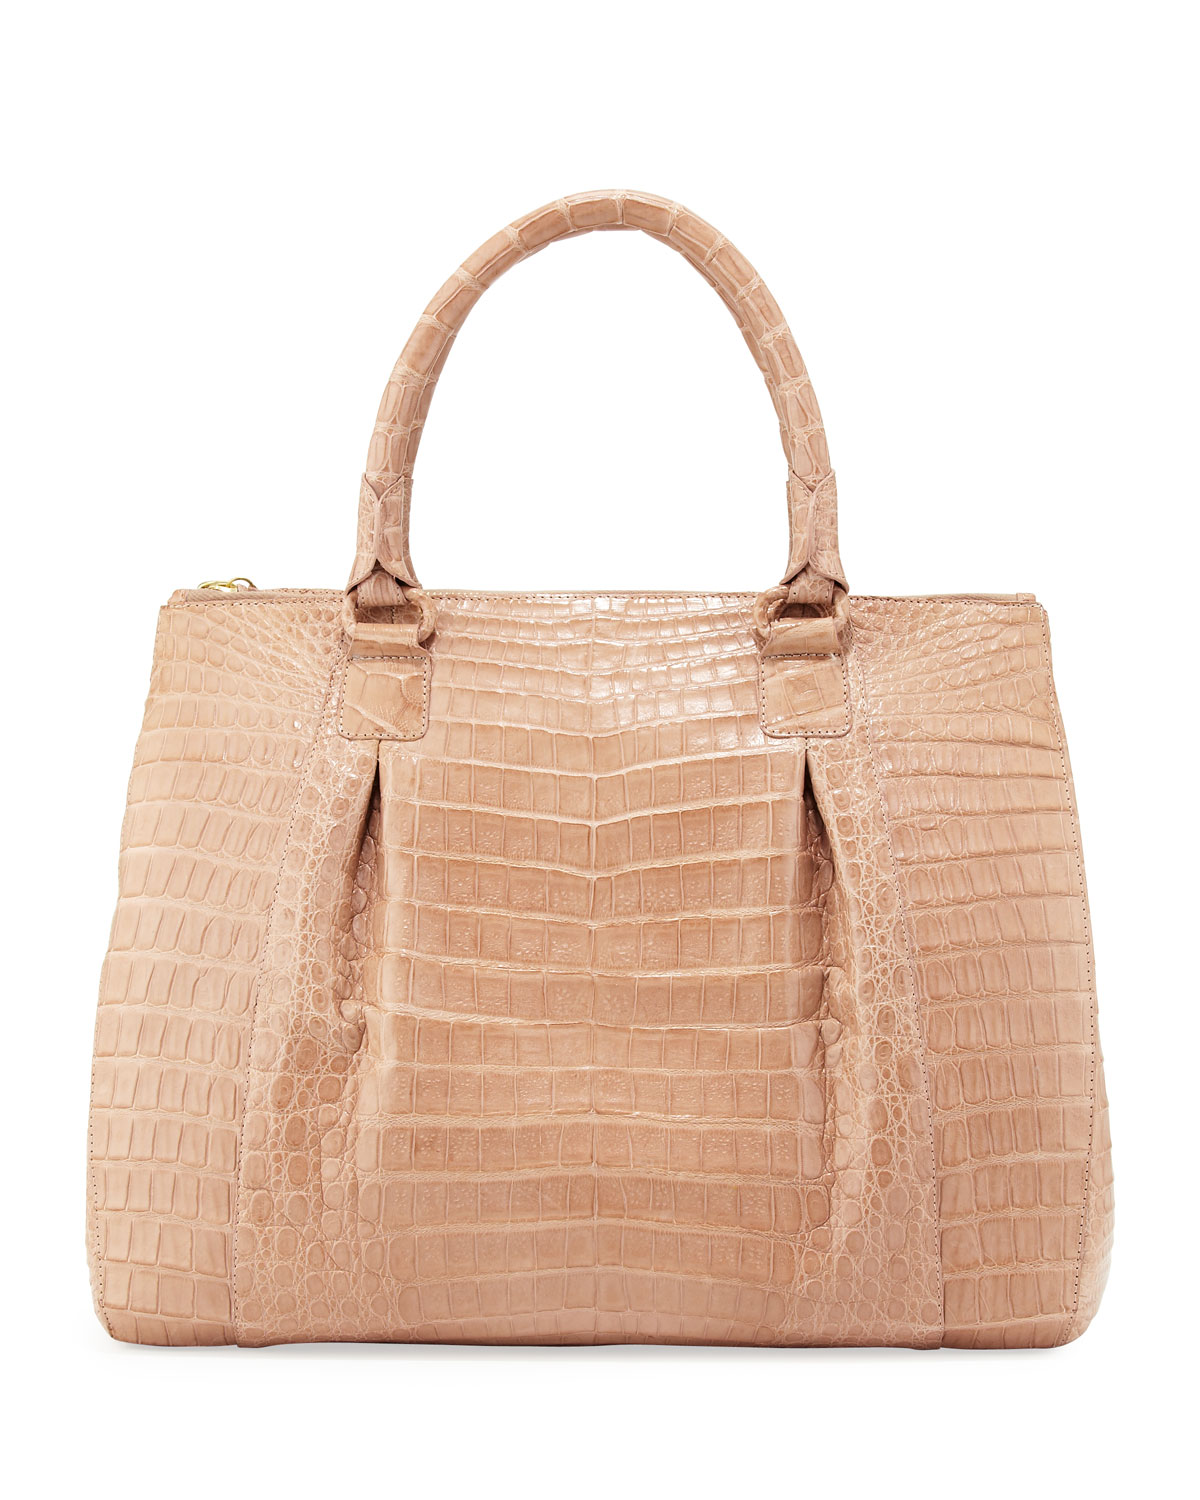 Nancy gonzalez large doublezip crocodile tote bag beige in for Nancy gonzalez crocodile tote